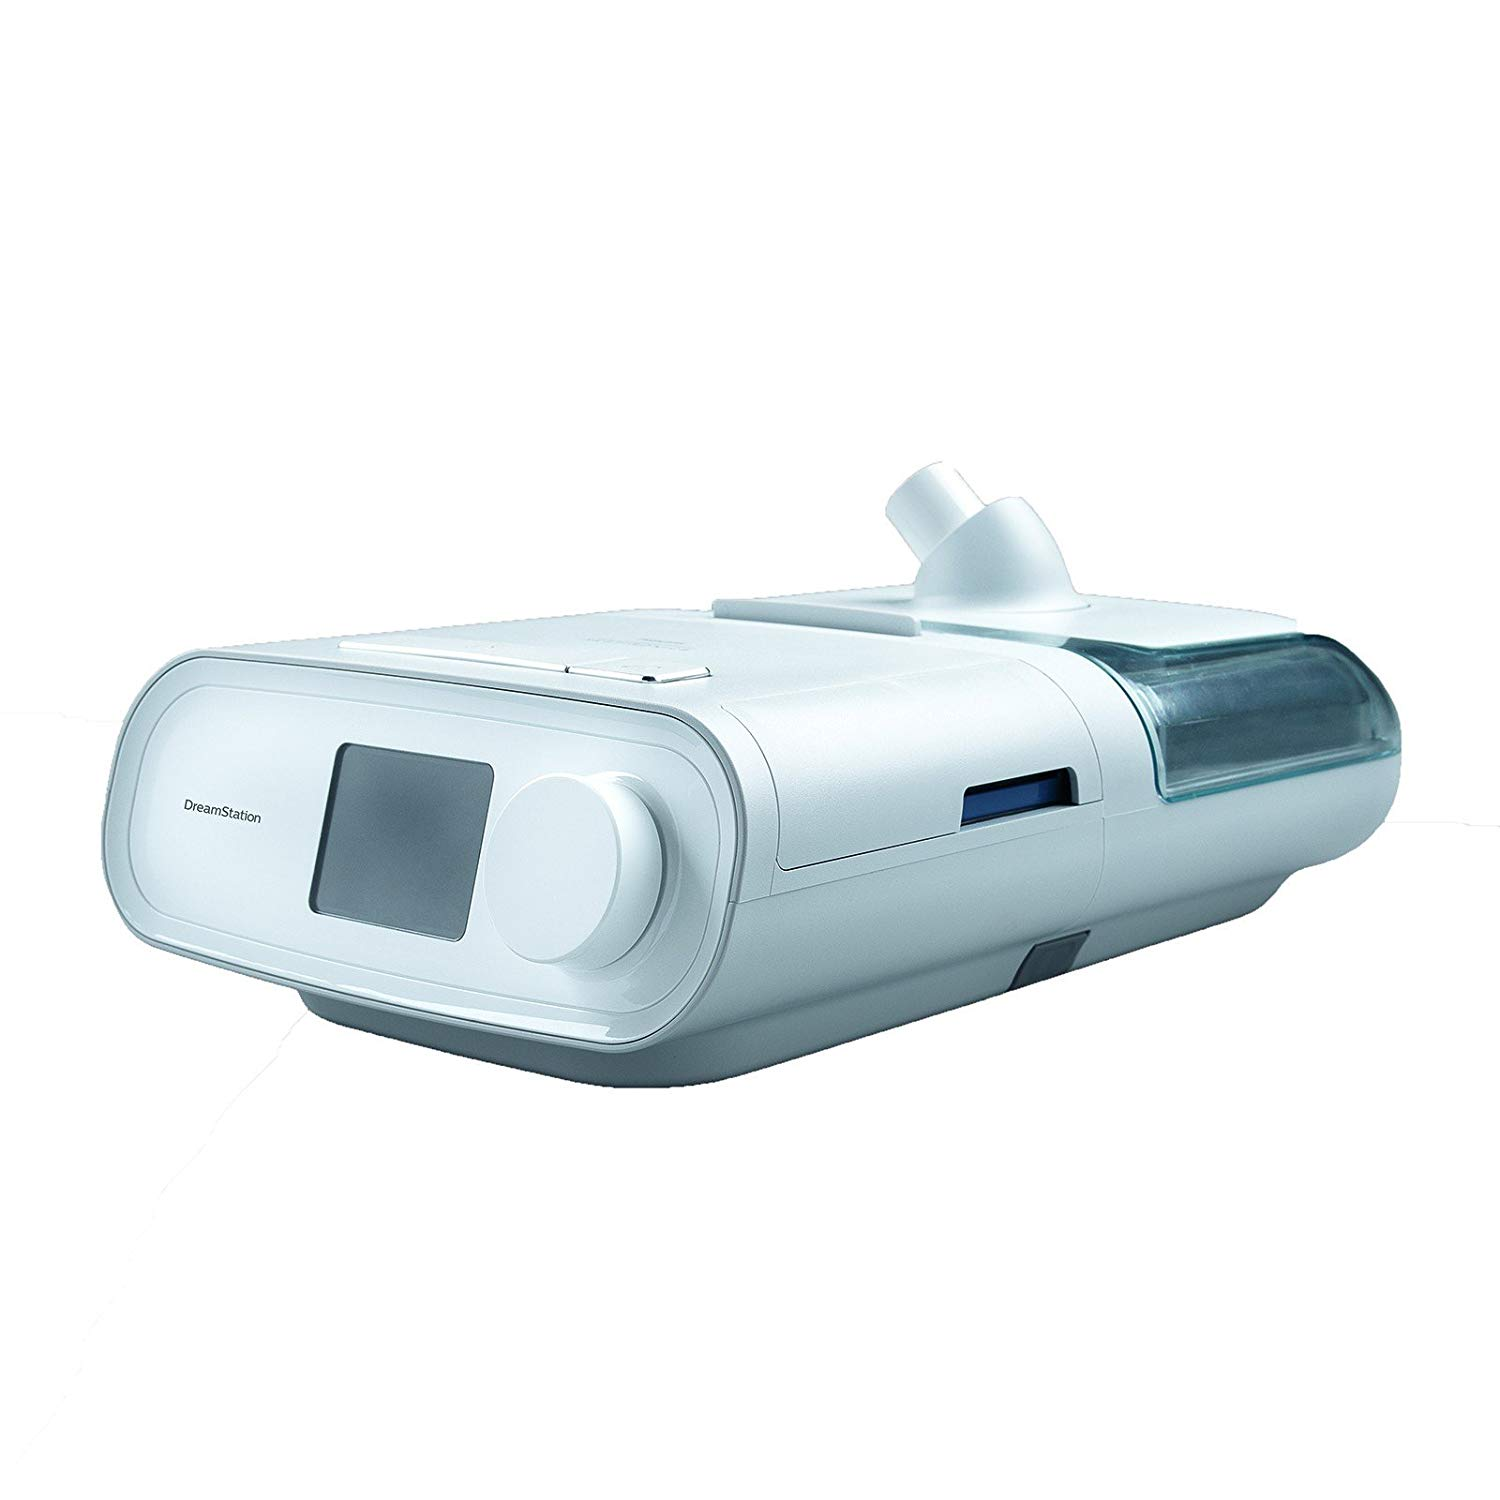 DreamStation Auto CPAP with Heated Humidifier